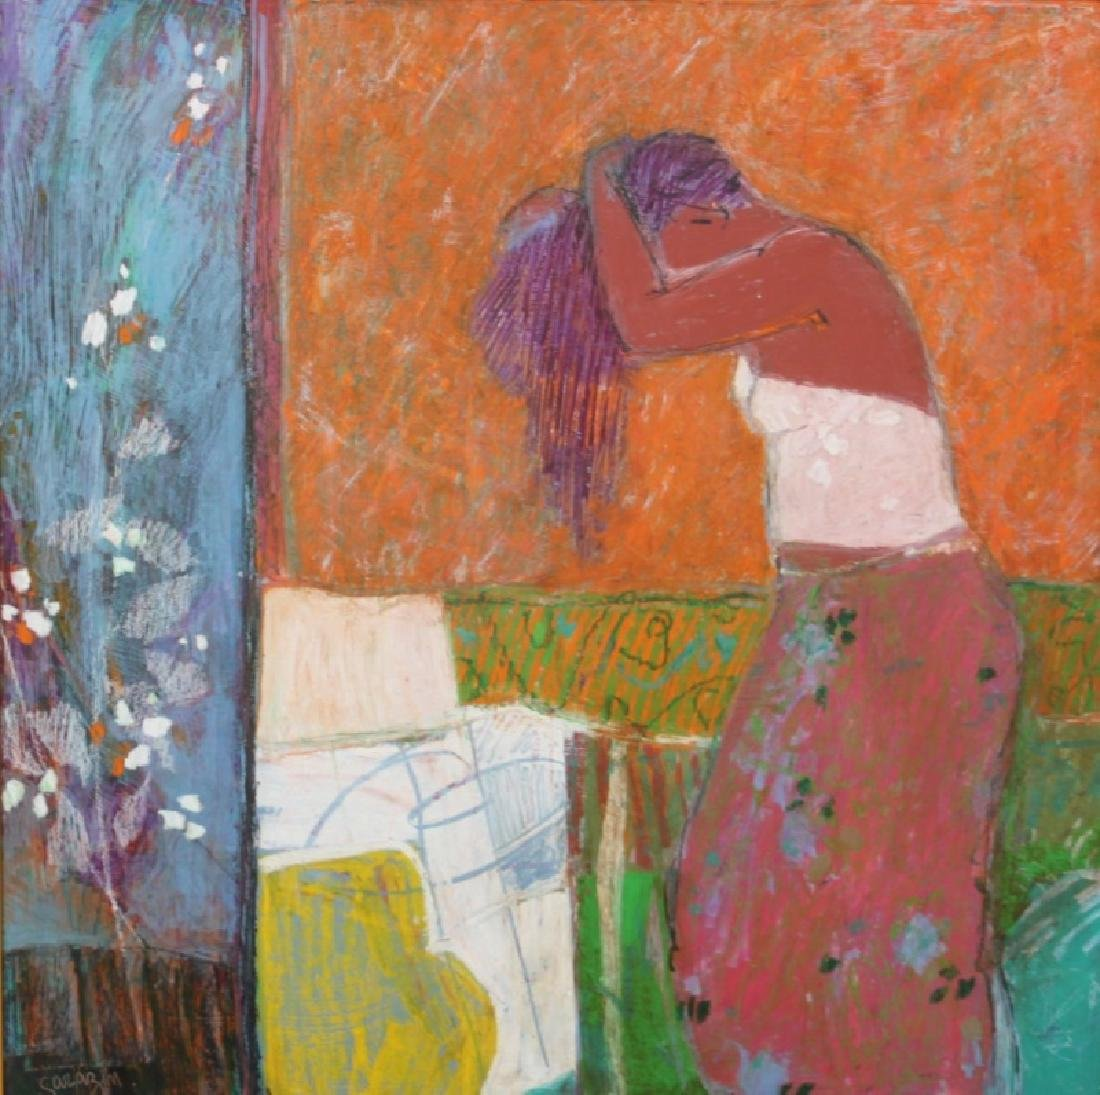 (2) Michel Sarazin (b 1942) Oil Pastel Paintings